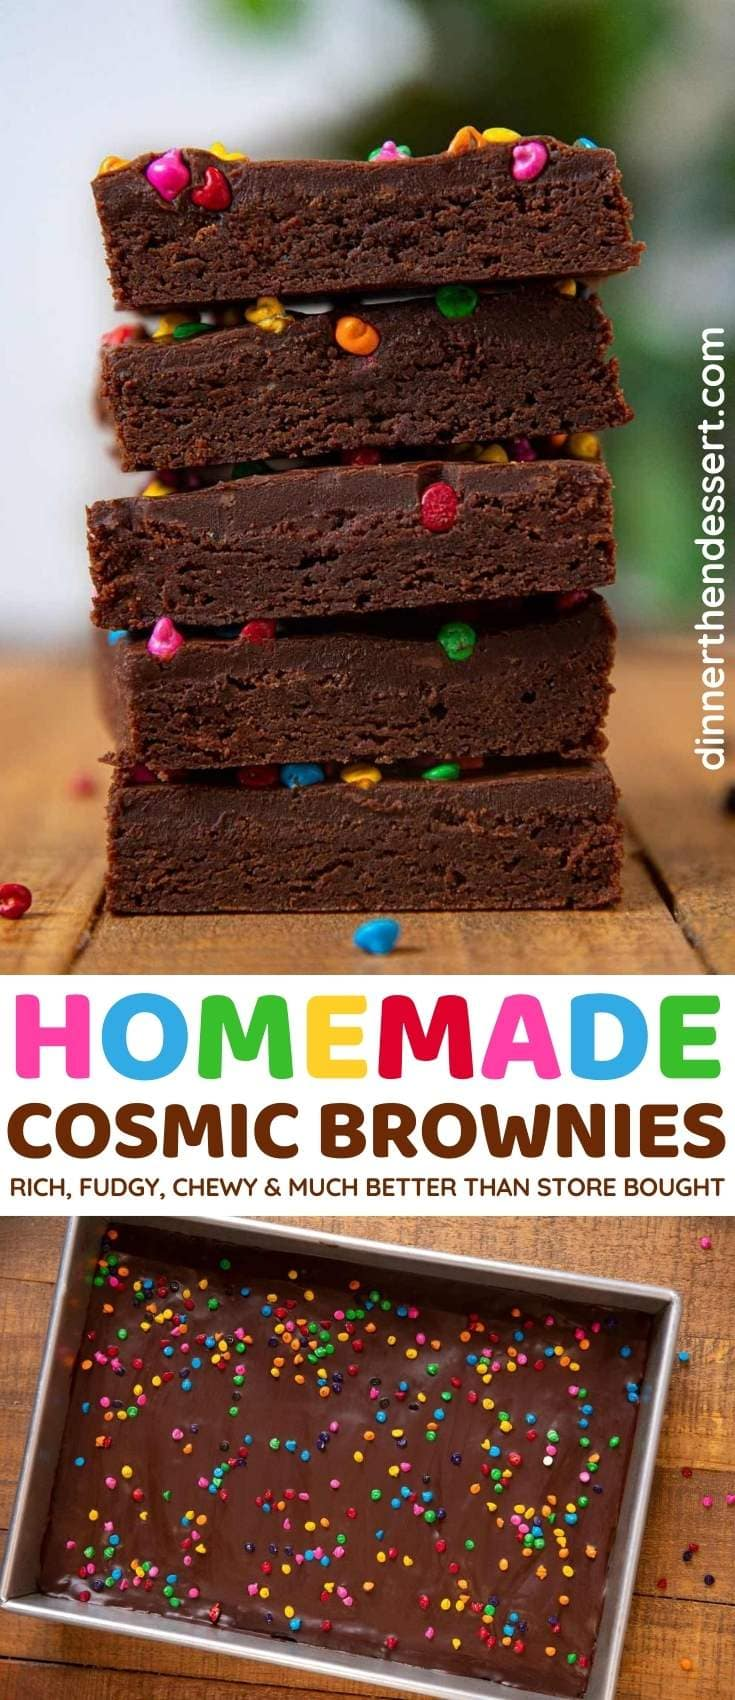 Cosmic Brownies collage